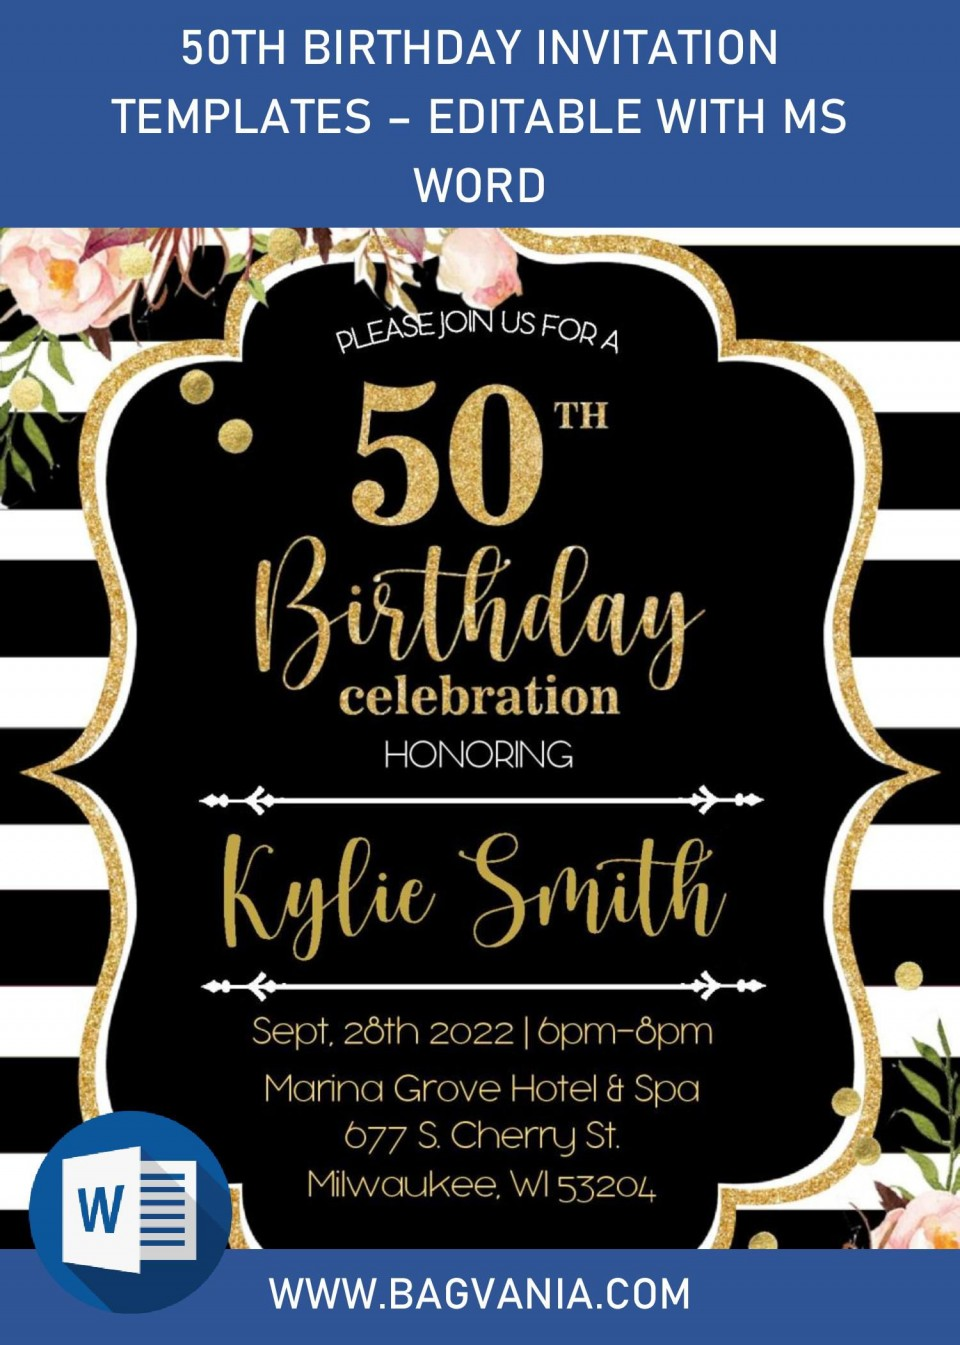 003 Phenomenal Microsoft Word 50th Birthday Invitation Template Highest Quality  Editable Wedding Anniversary960